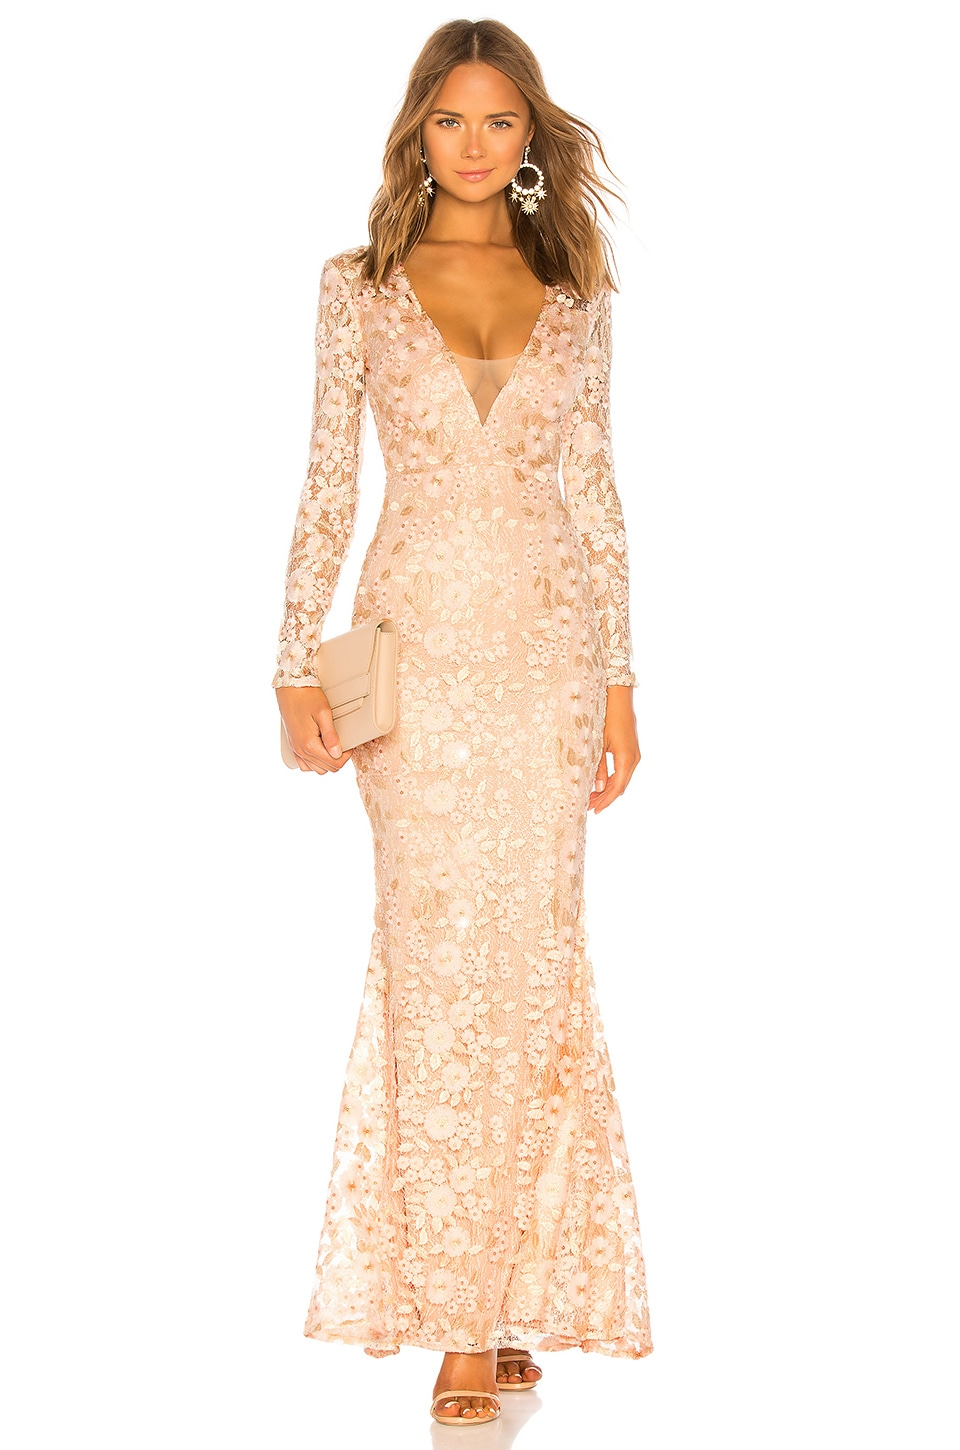 Michael Costello x REVOLVE Genner Gown in Light Pink Floral